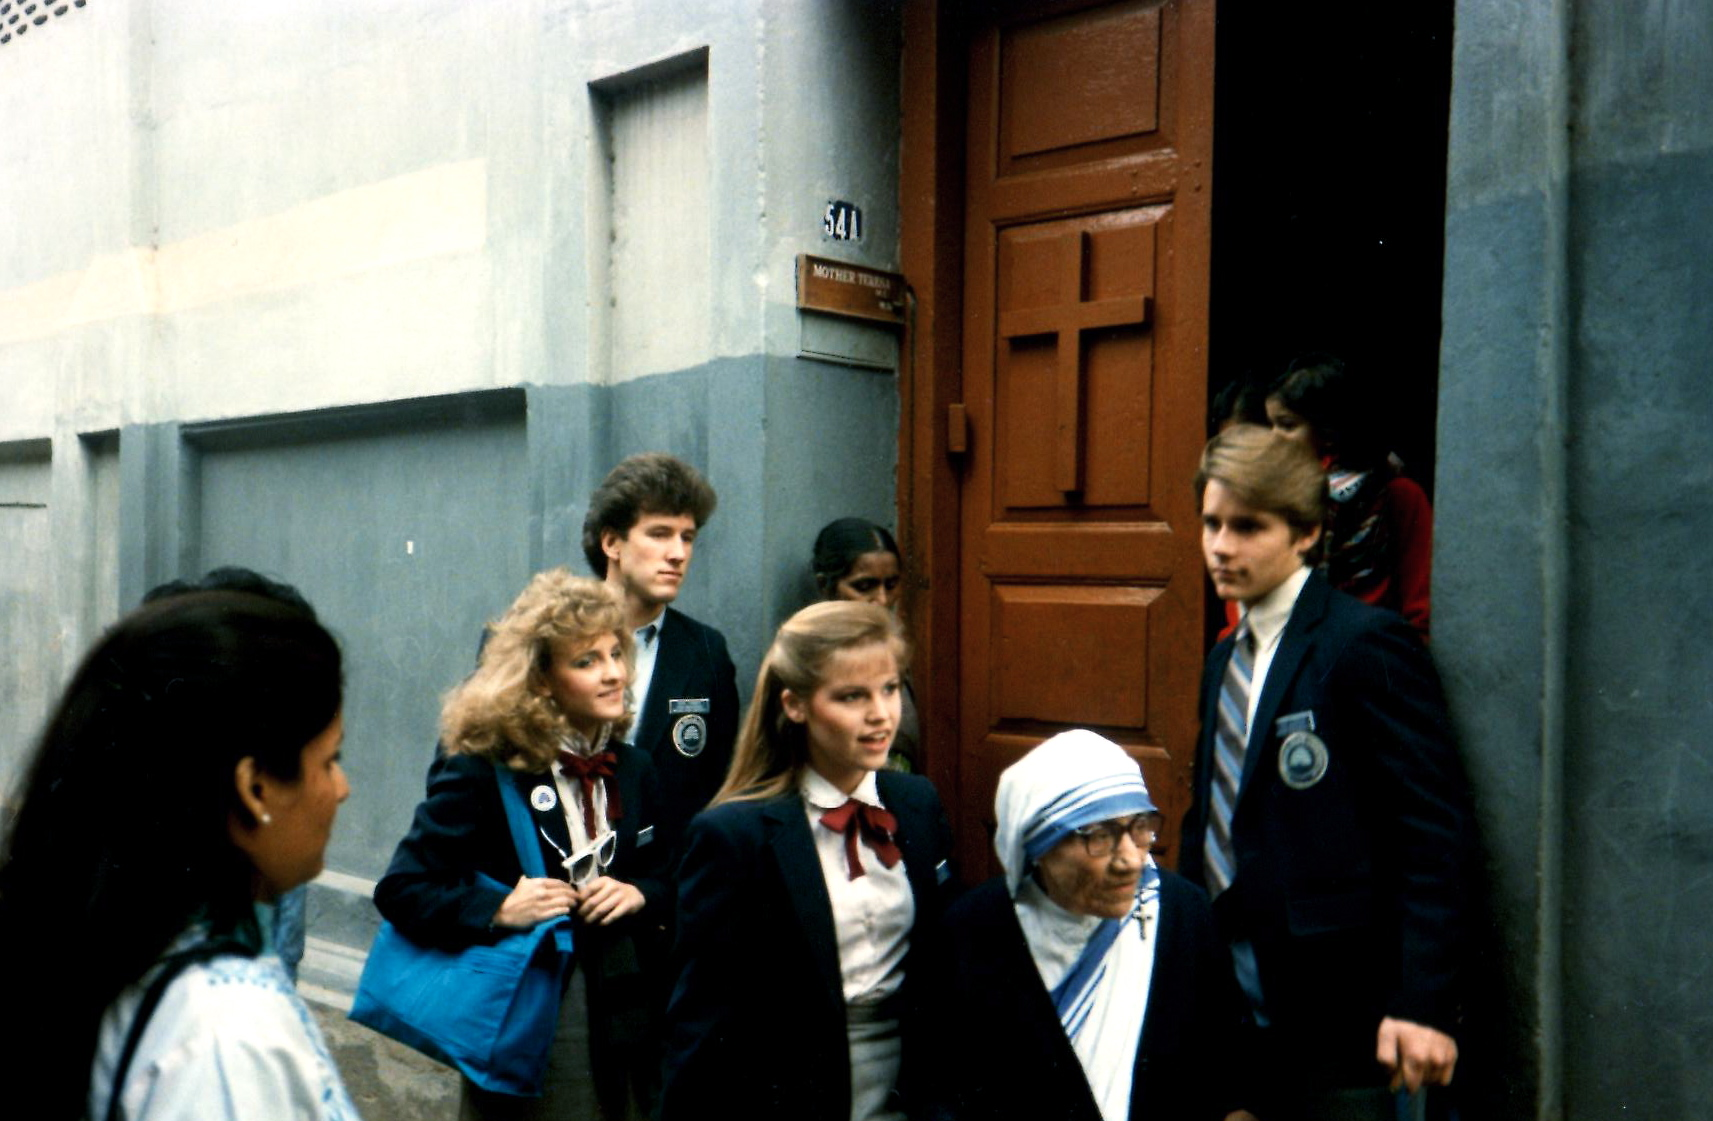 Taunalyn Rutherford, holding blue bag, walks with Mother Teresa and fellow members of Brigham Young University's Young Ambassadors on the streets of Calcutta, India, in 1986.